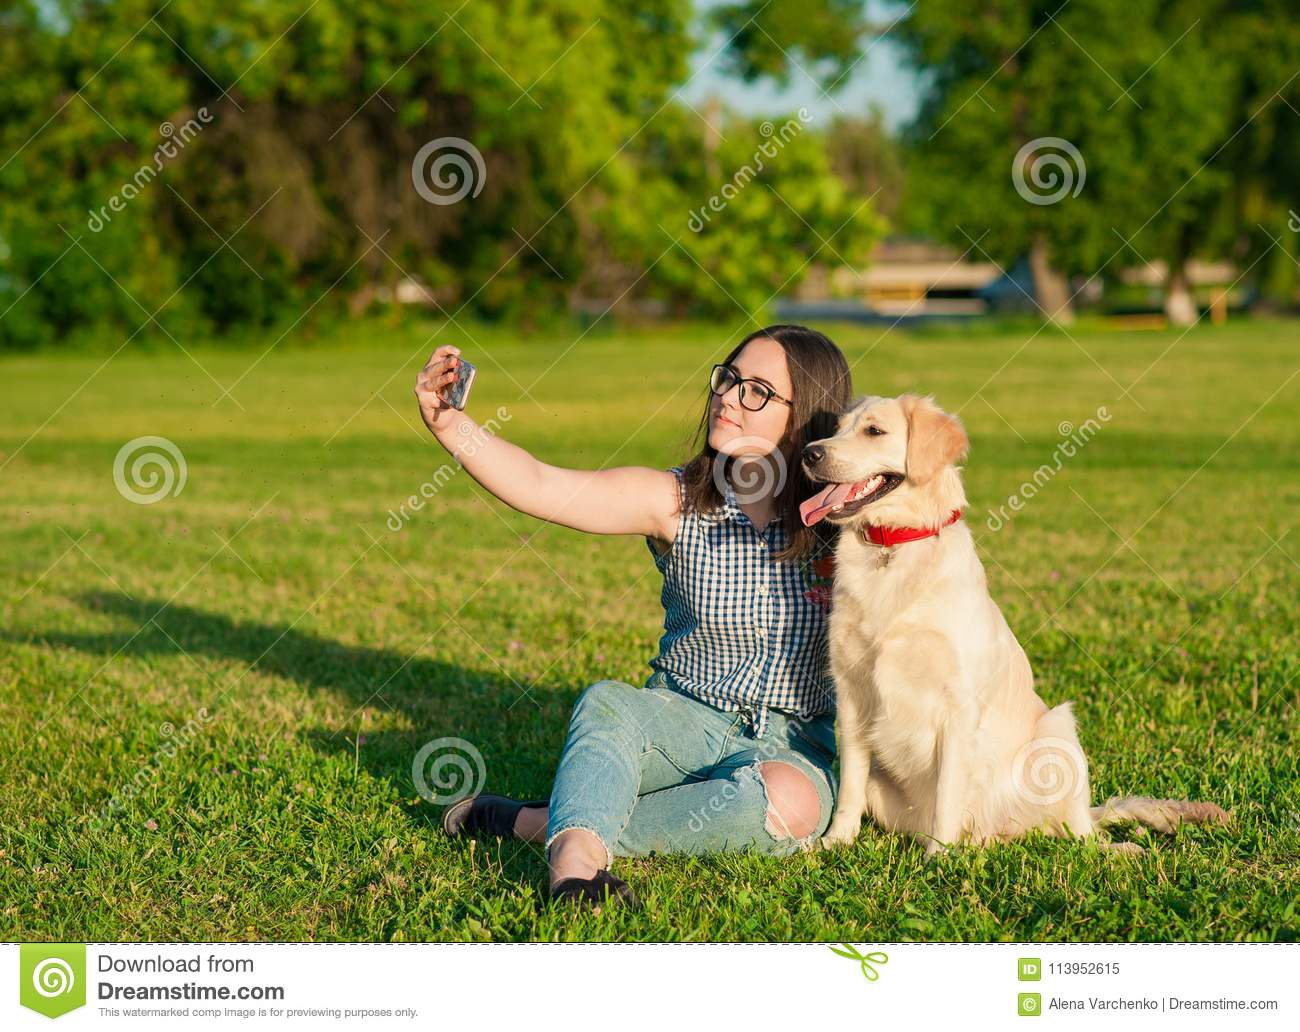 Young woman and her friendly dog taking a selfie at a park